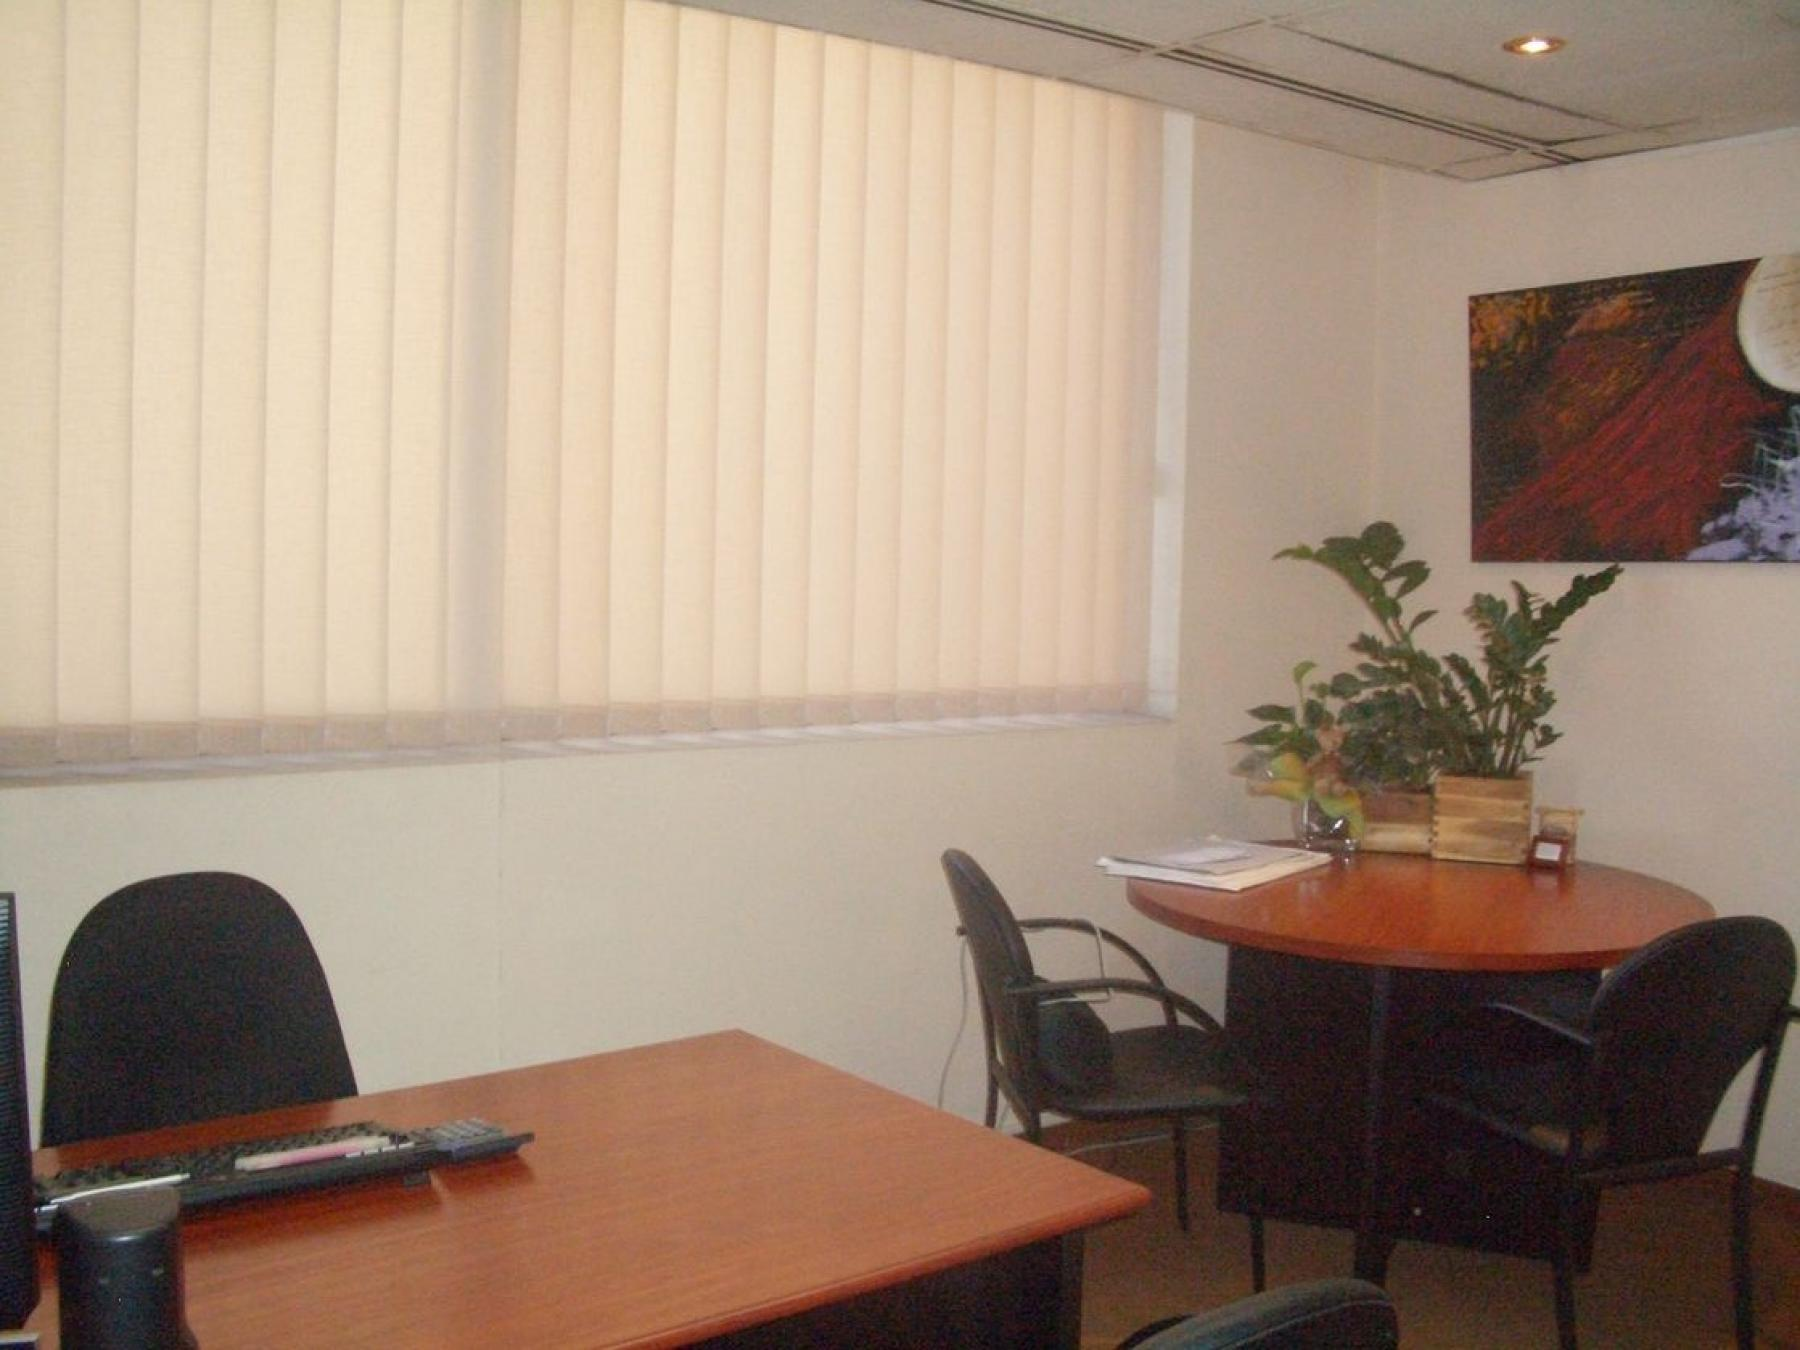 One of the offices available at Carrer de la diputació